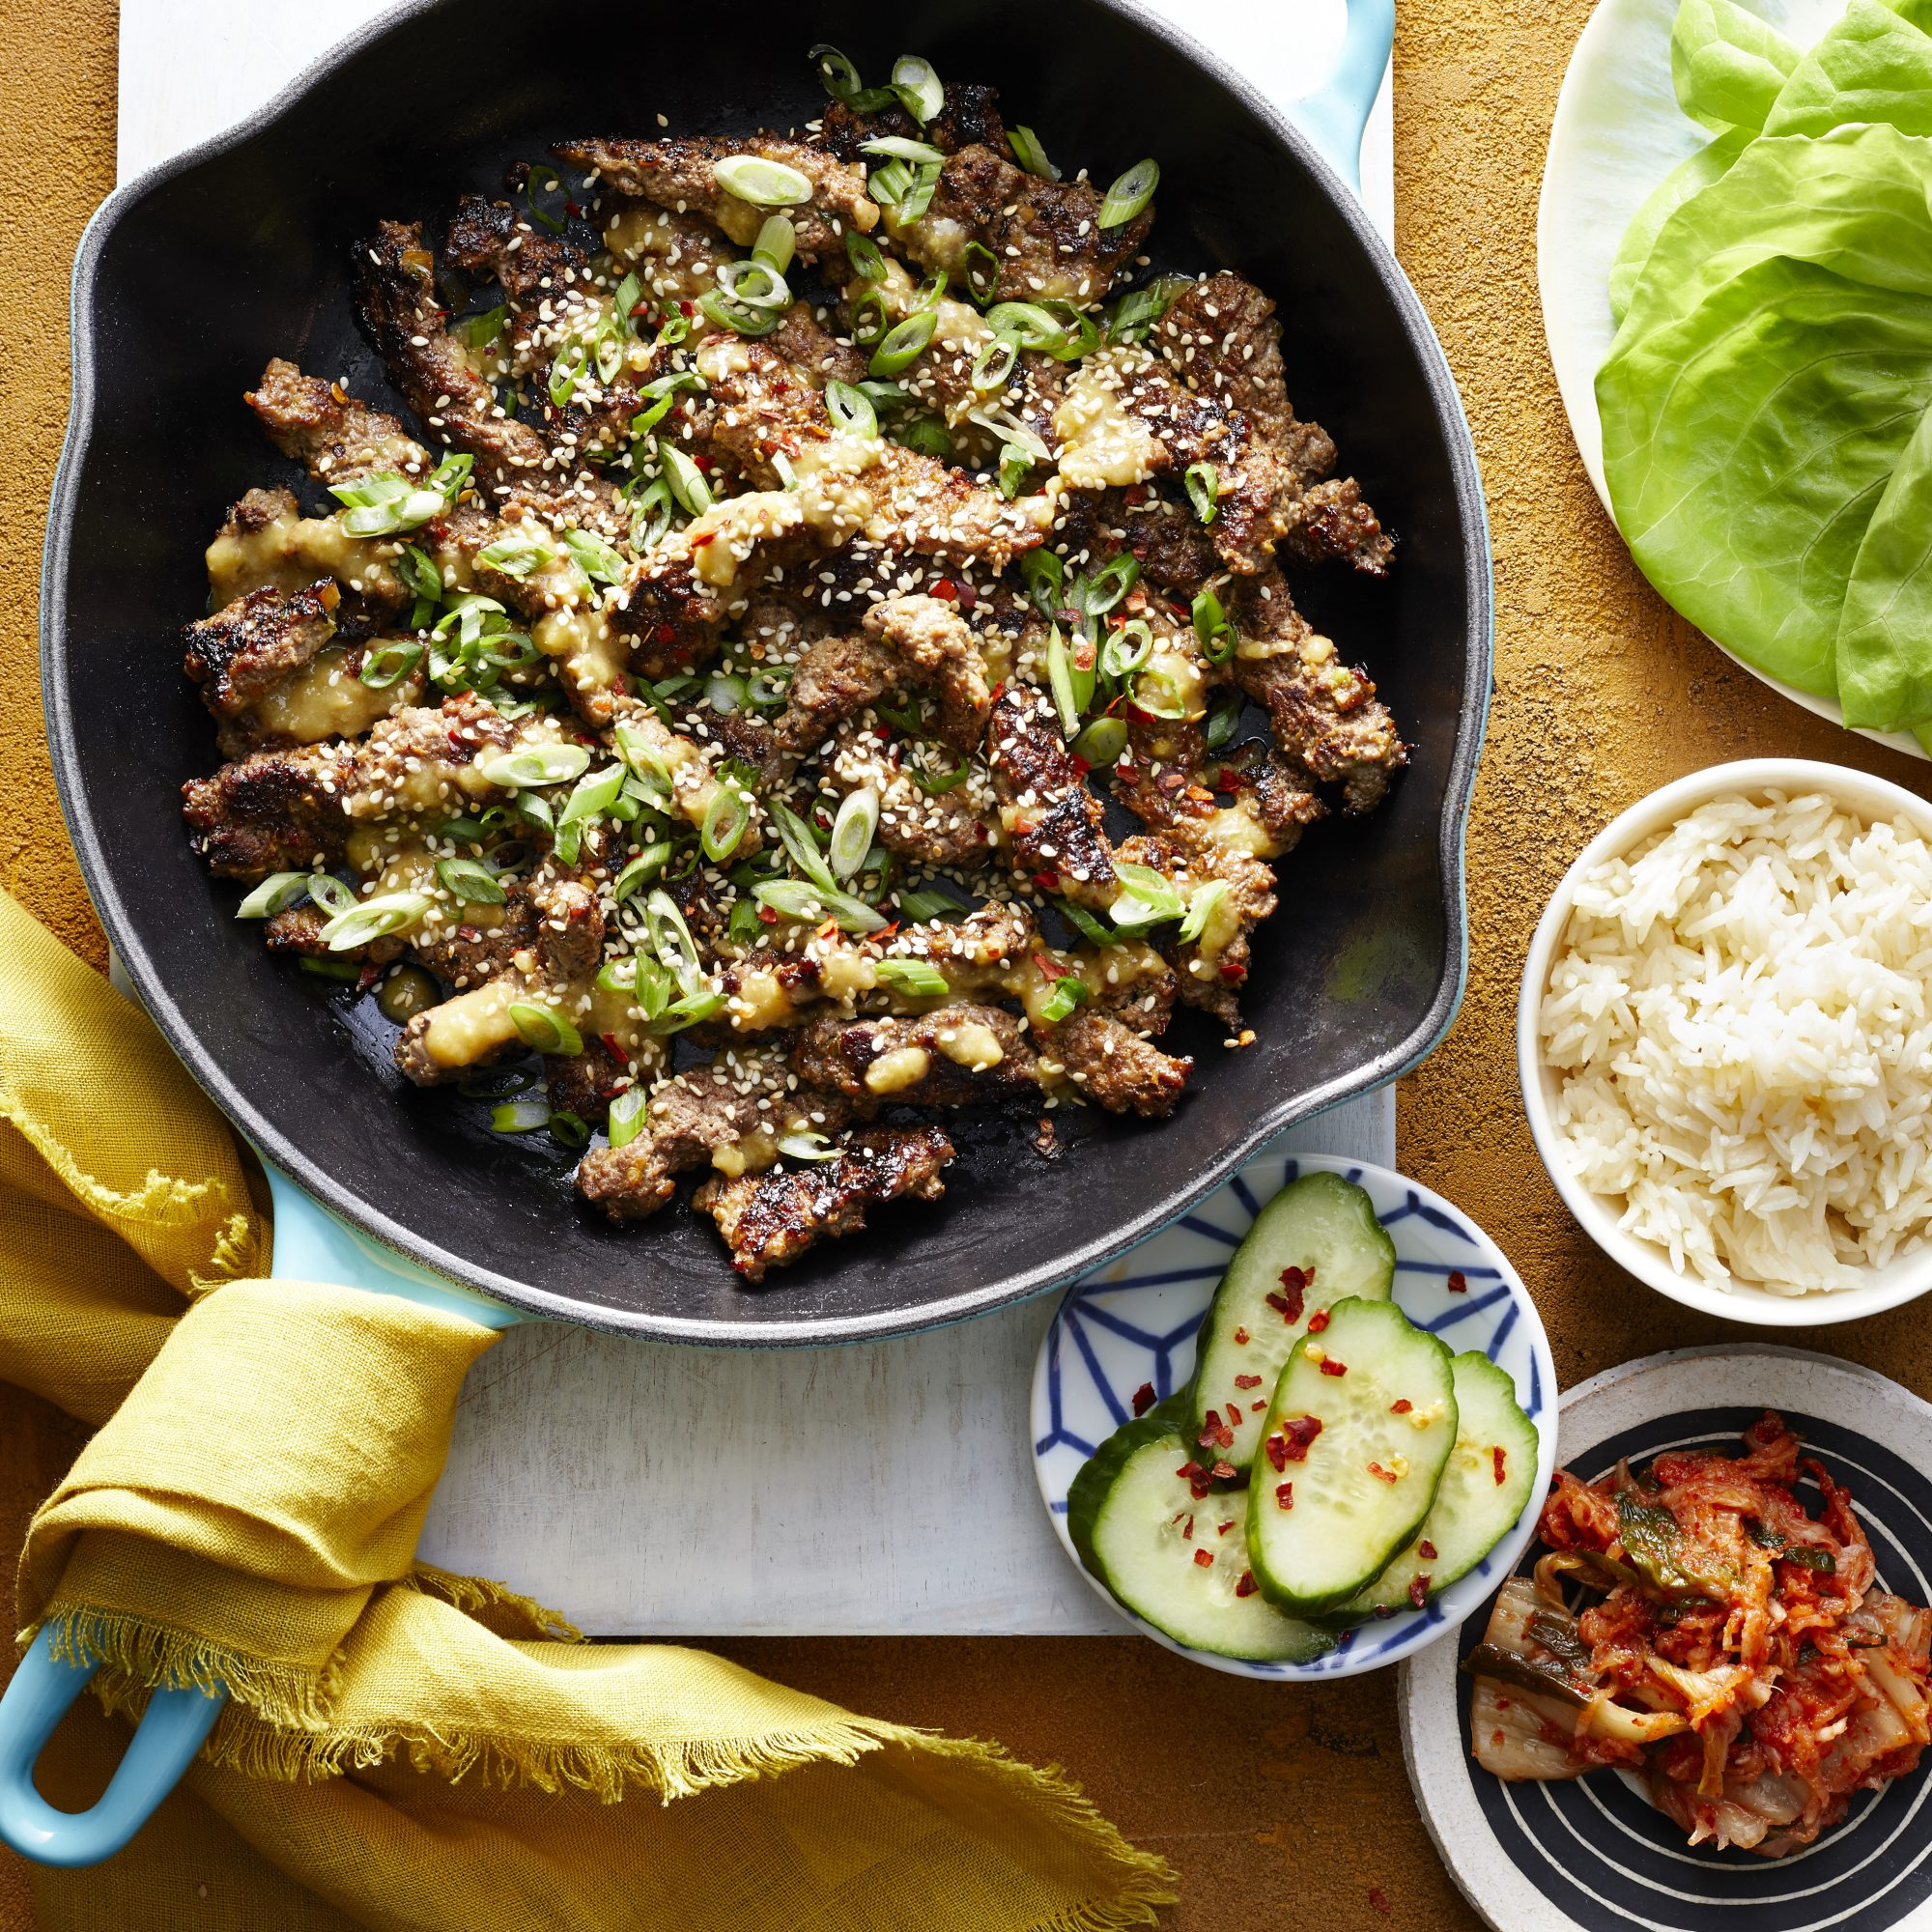 Cubed Steak Bulgogi image